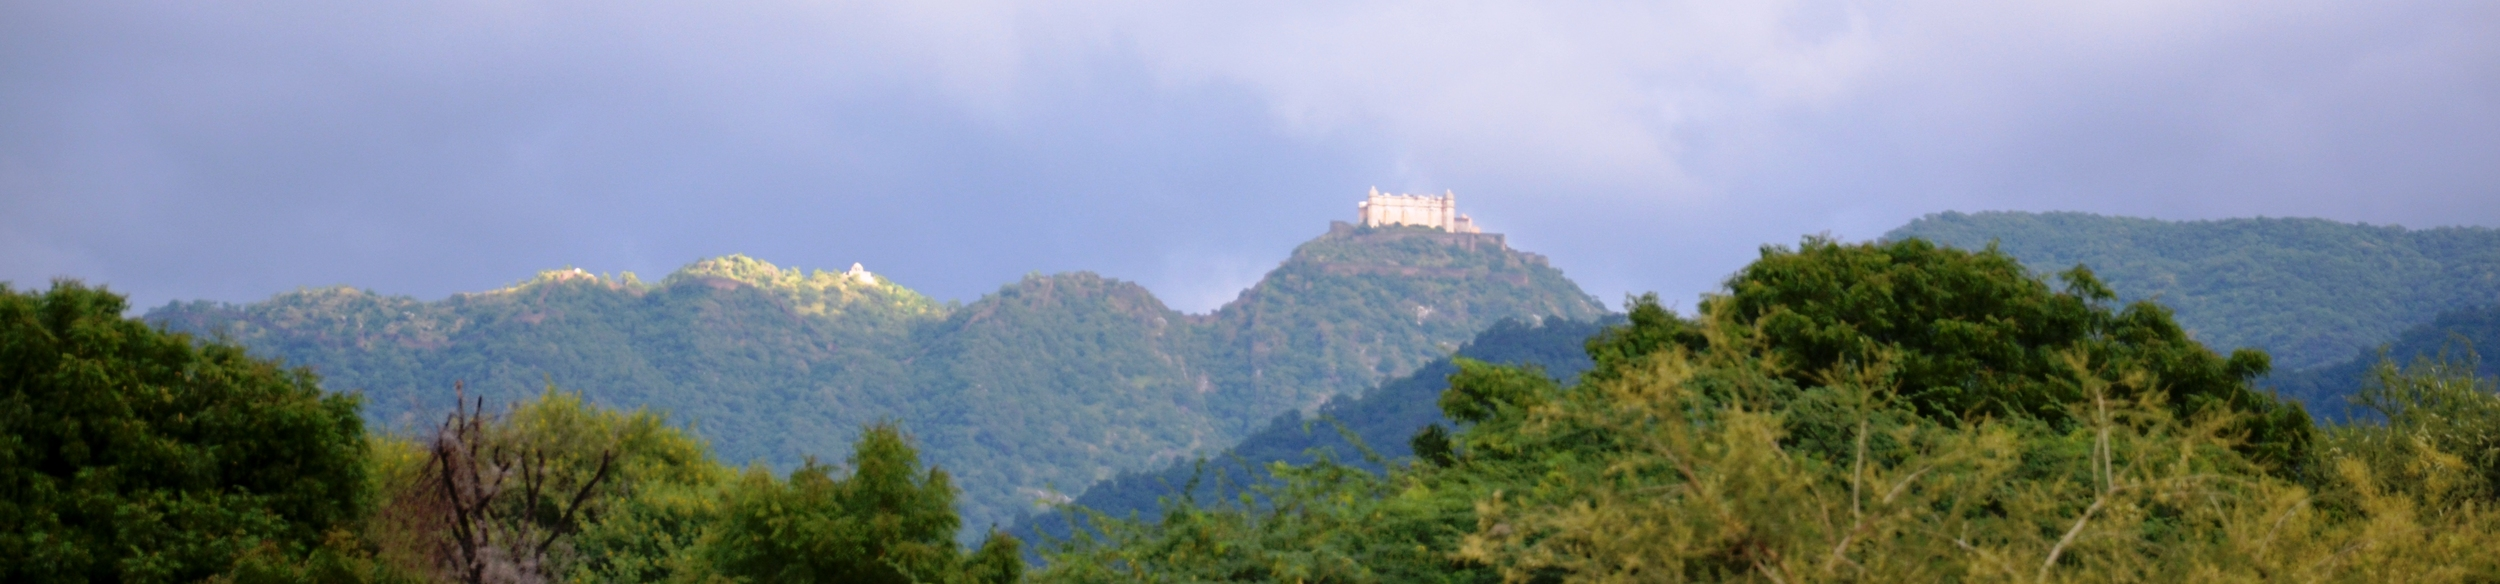 Kumbhalgarh Fort - as seen from LPPS campus